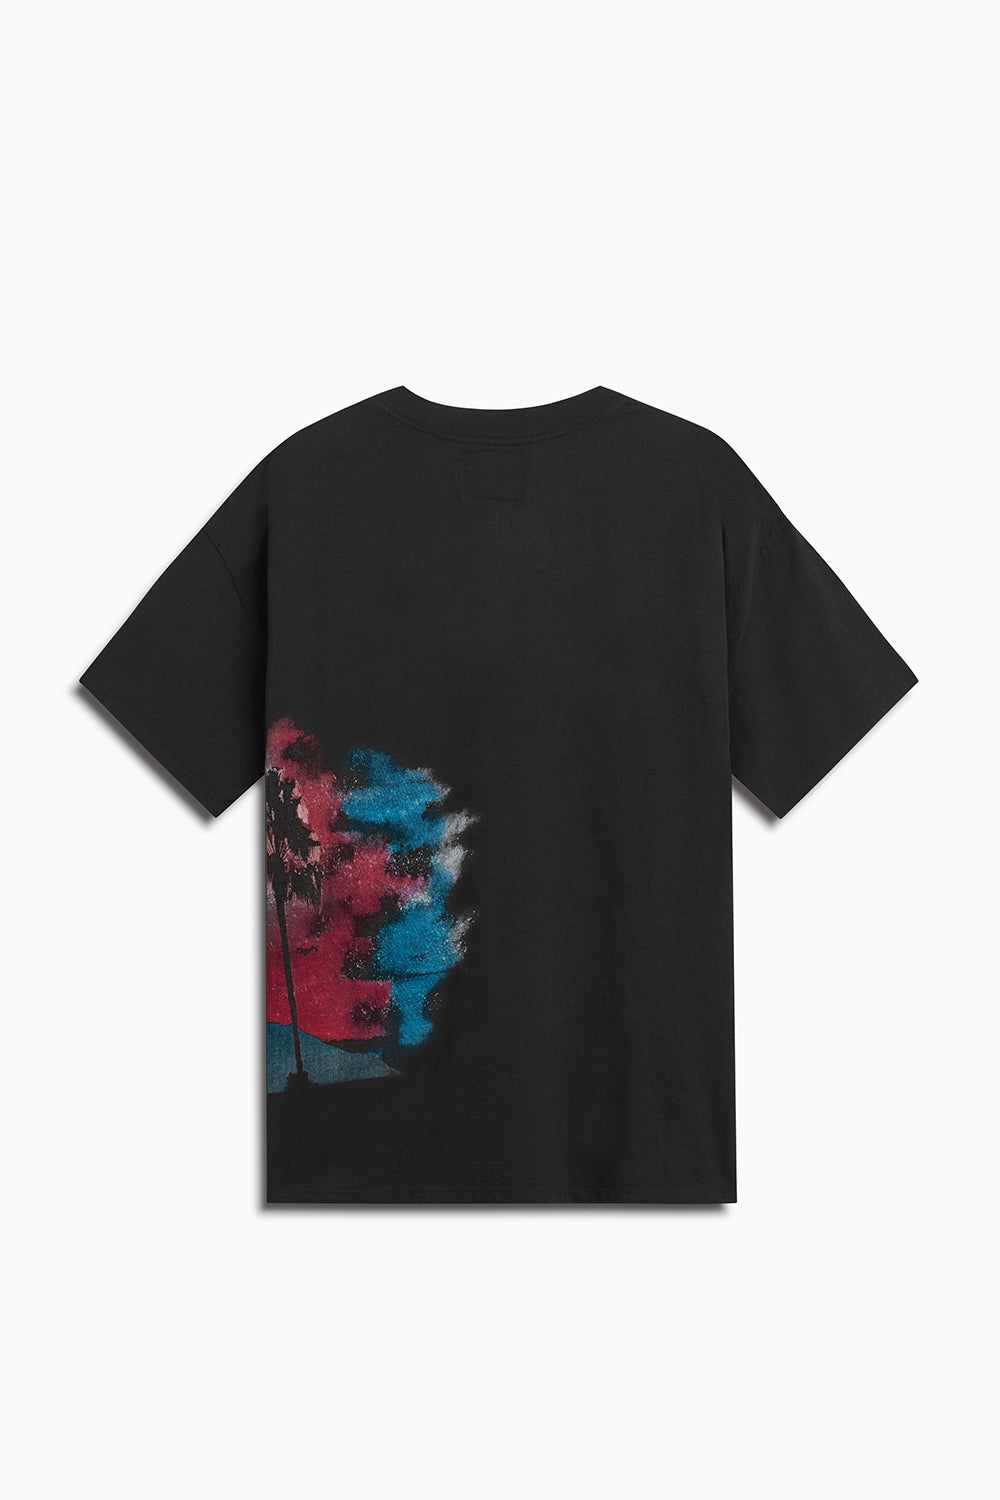 LA nights tee / black + pink + blue